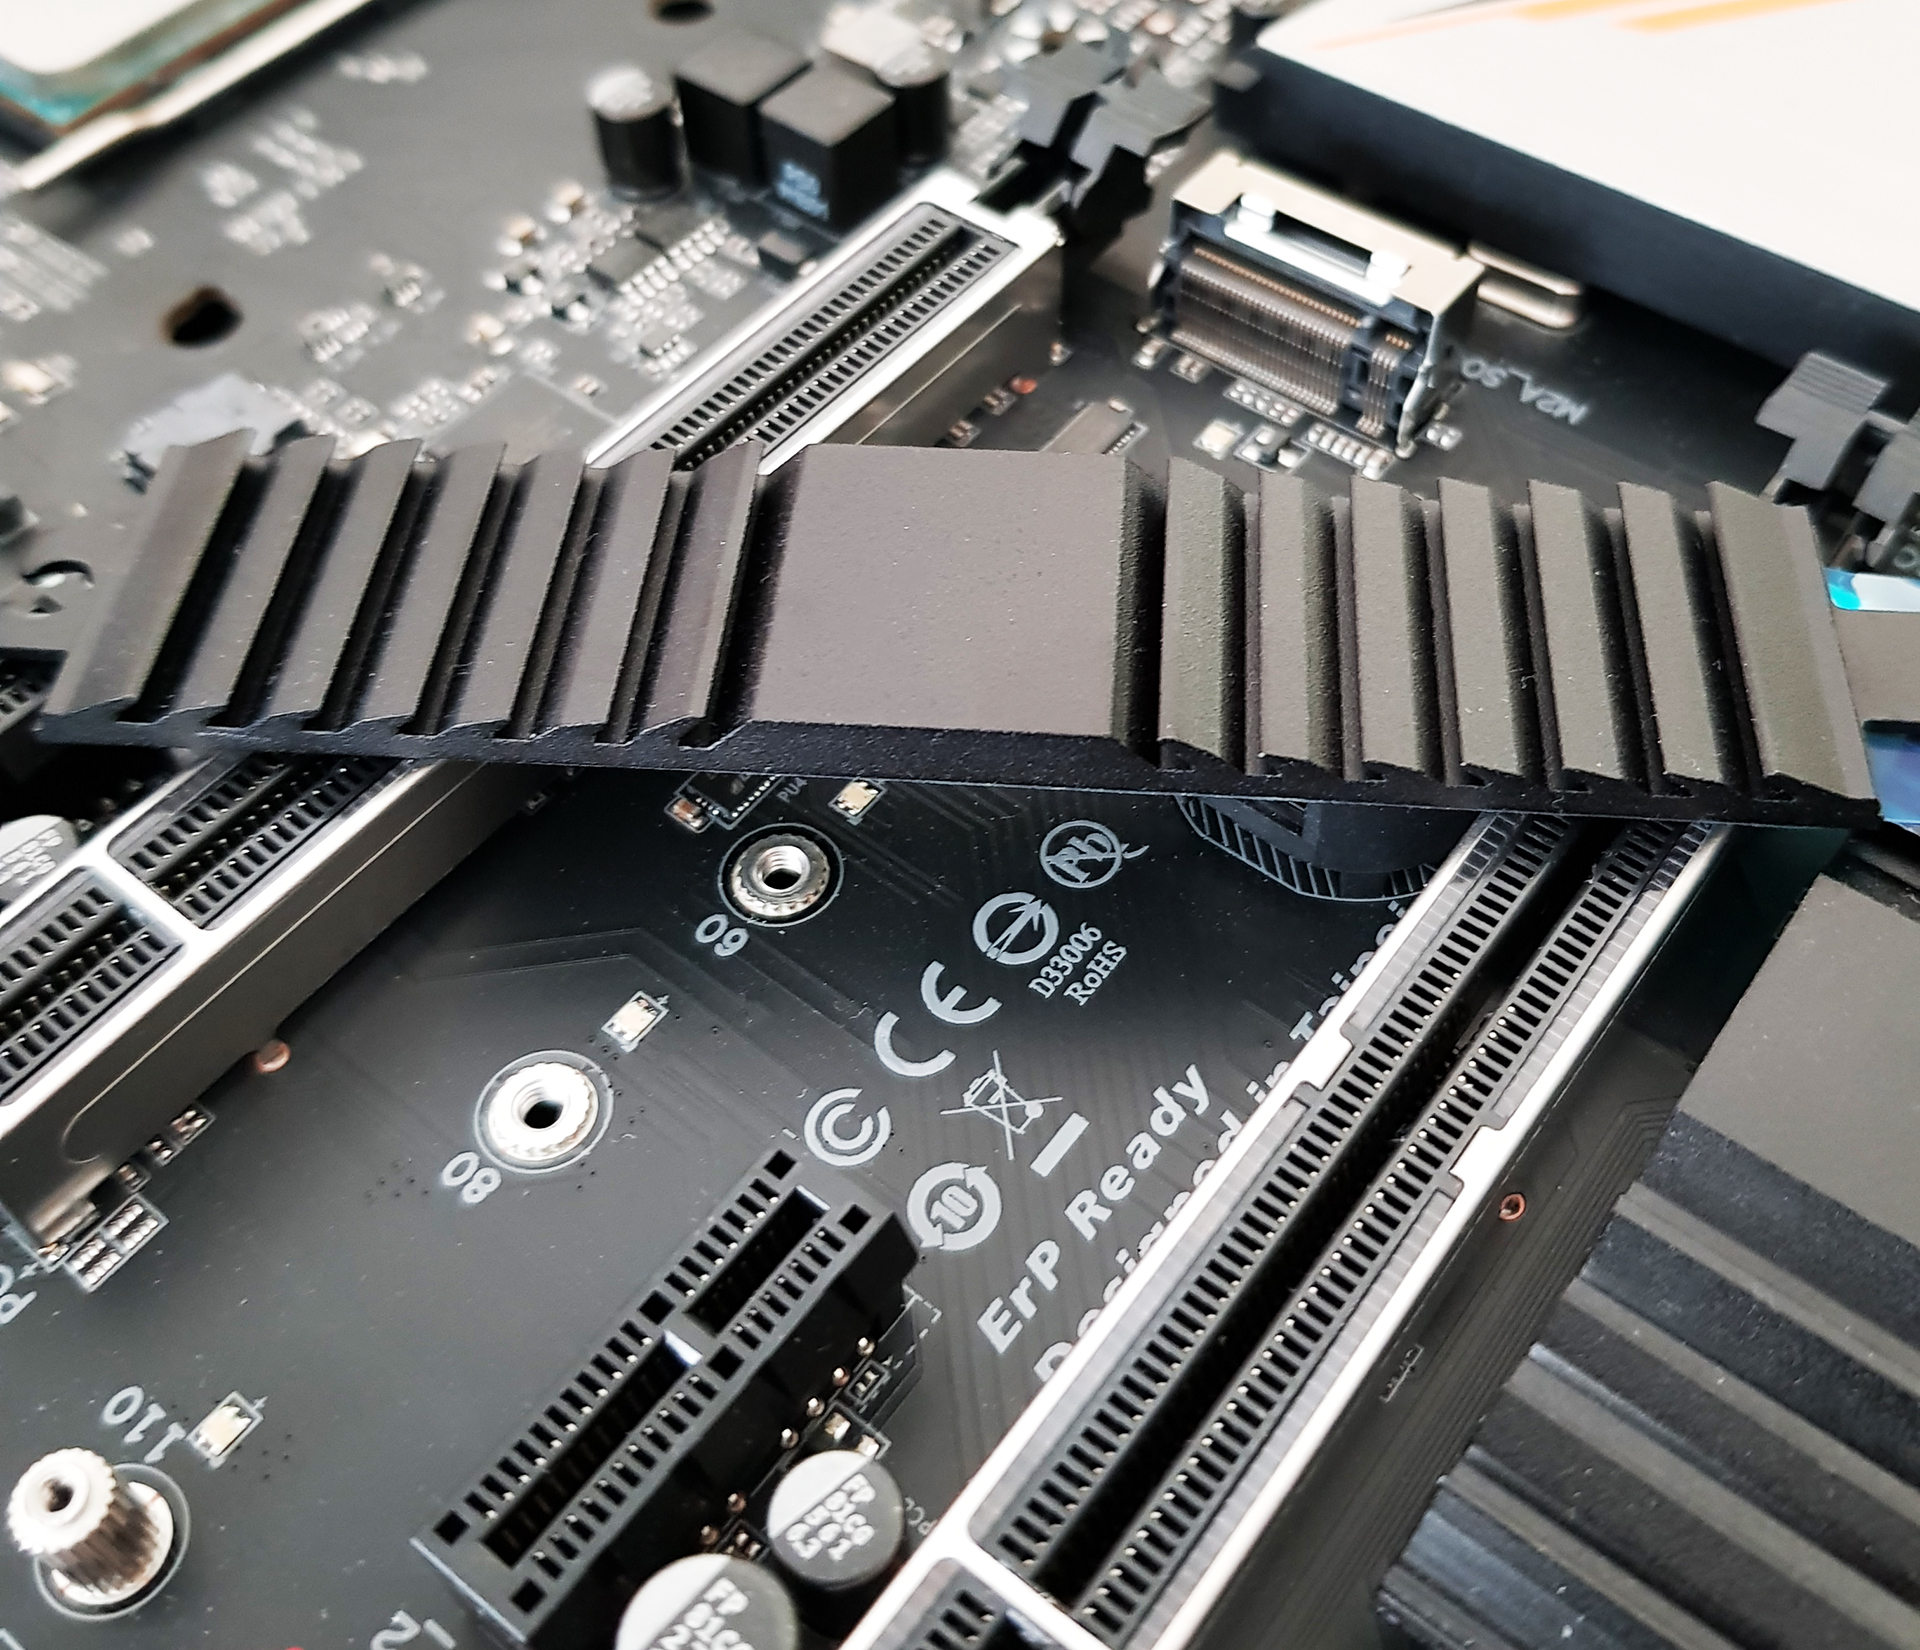 Visual Inspection - The GIGABYTE X470 Gaming 7 Wi-Fi Motherboard